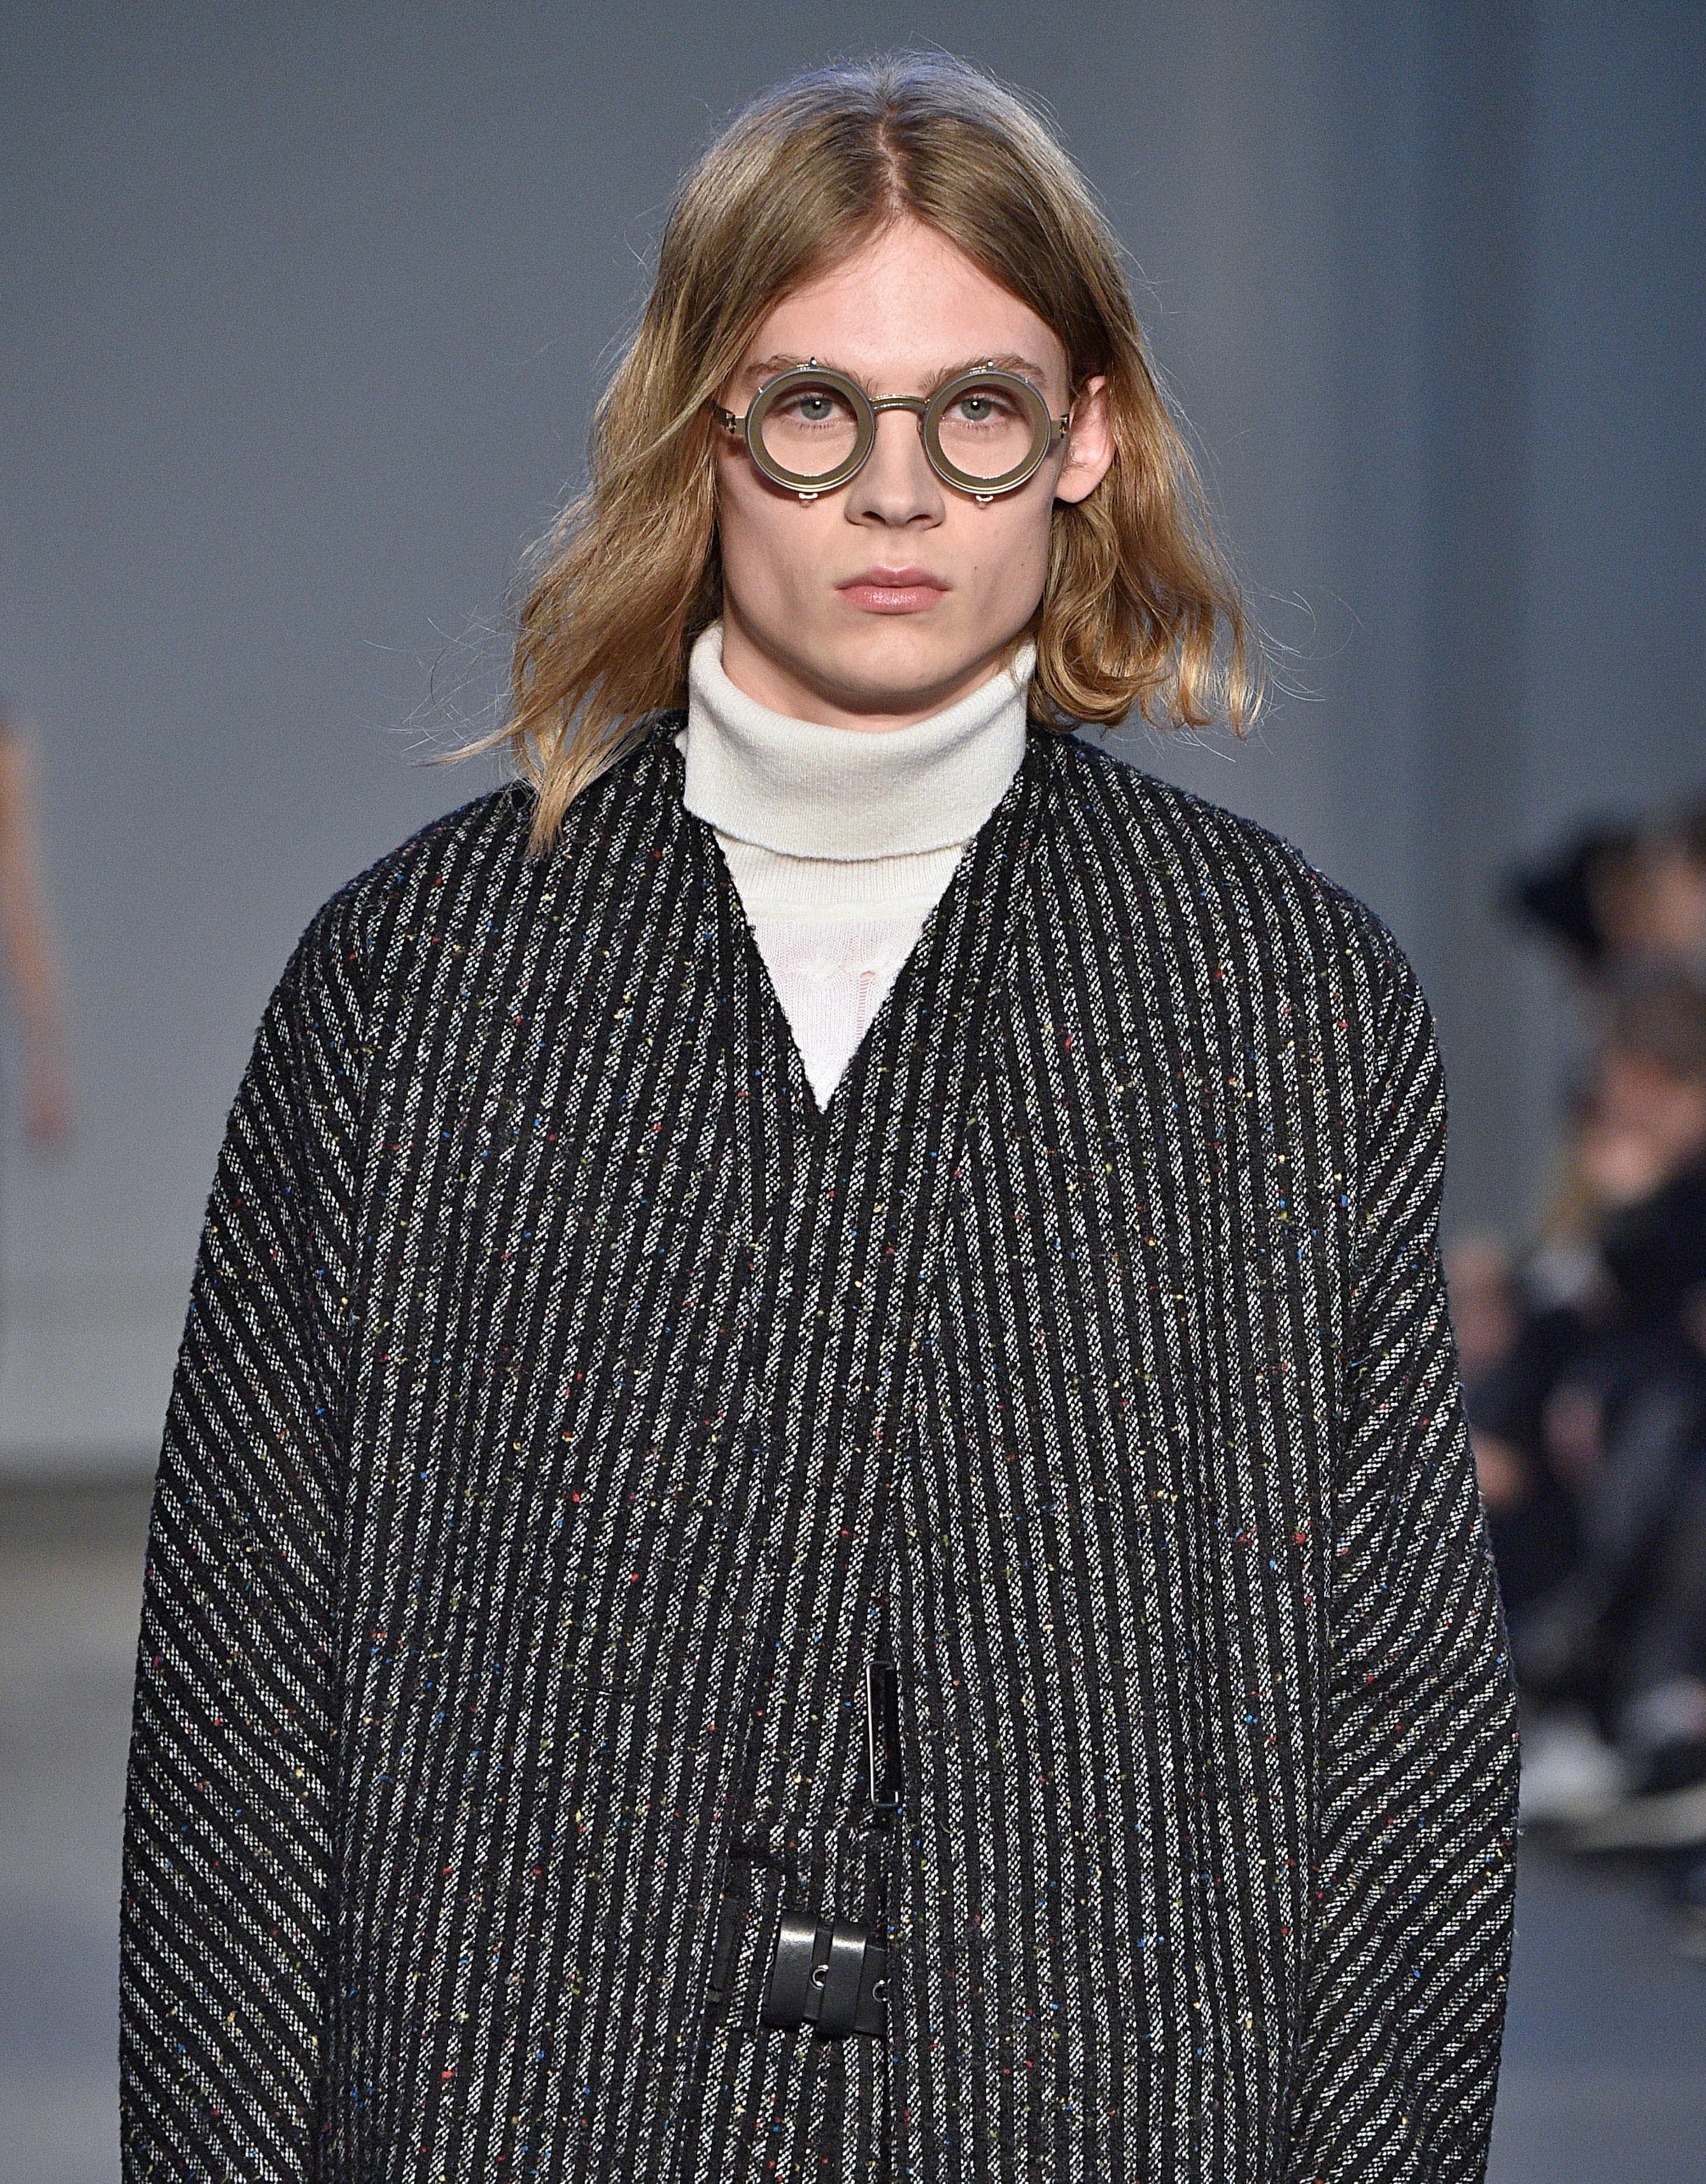 blonde male model with long flowing '90s kurt cobain hair